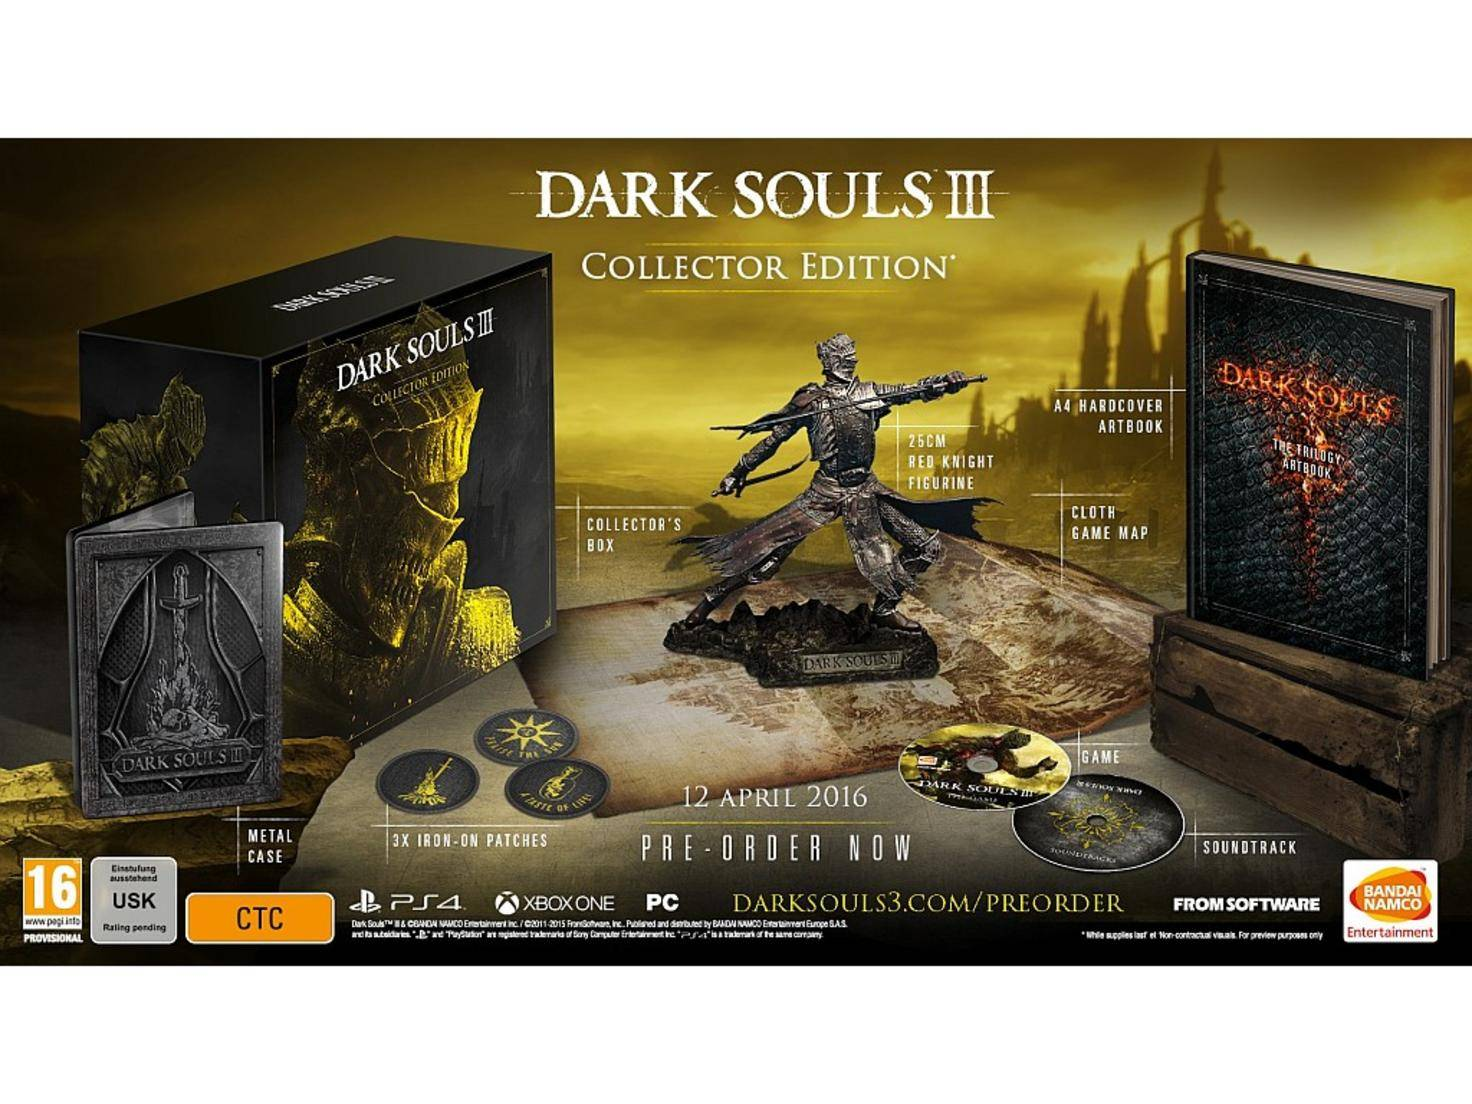 DarkSouls3_Collector_Edition-pc-games.jpg